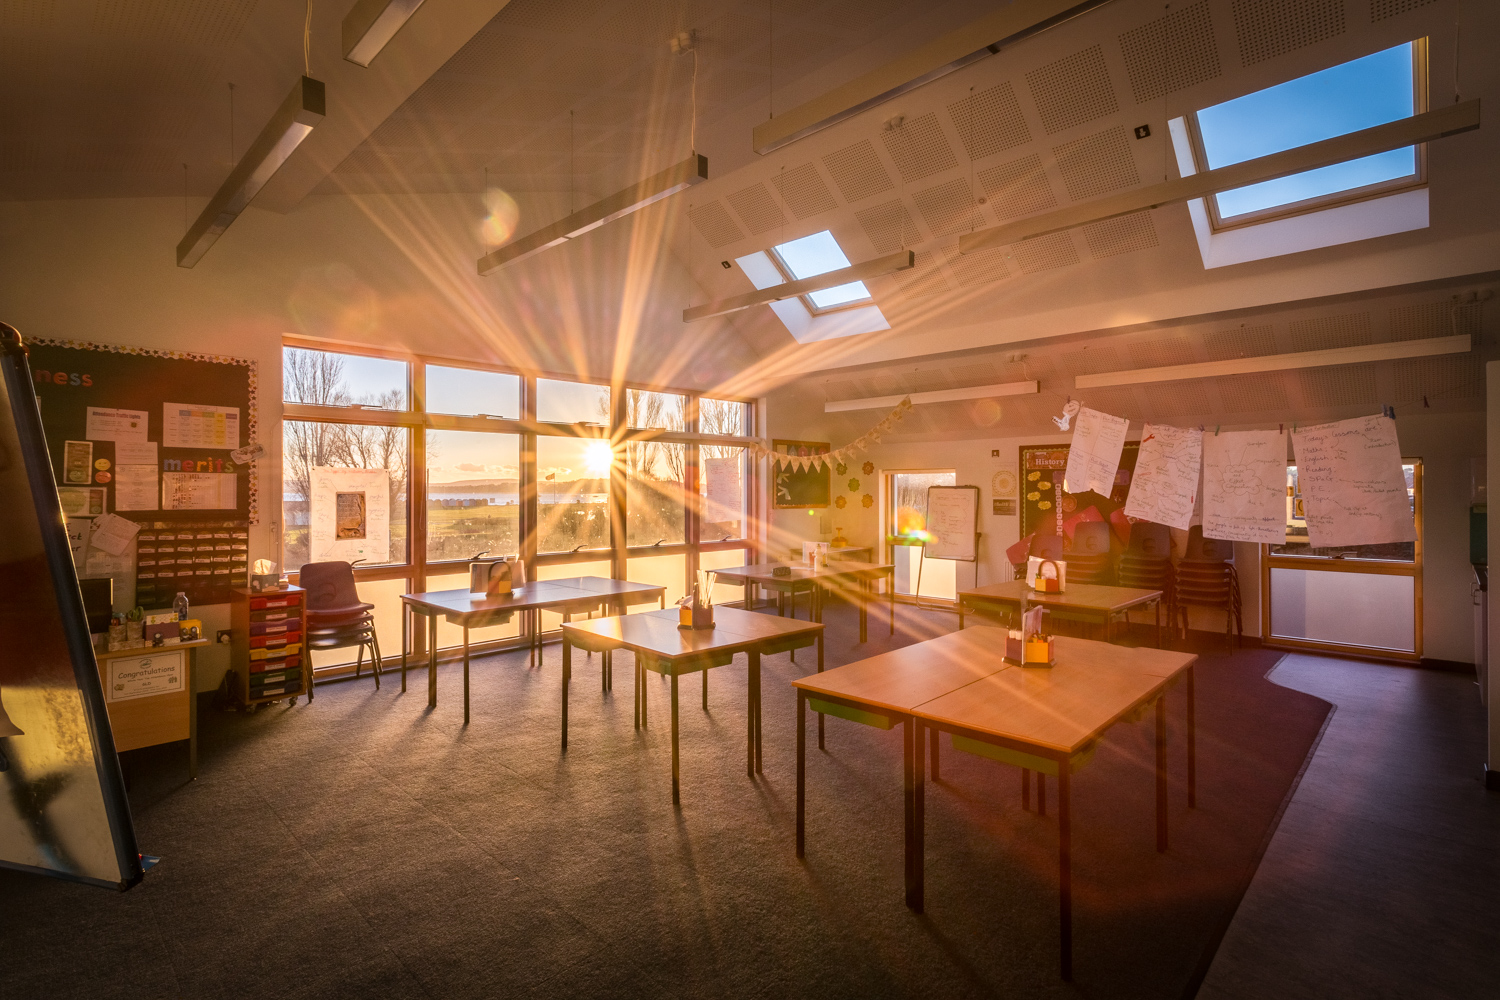 A sunny classroom in Polle by interior photographer Rick McEvoy